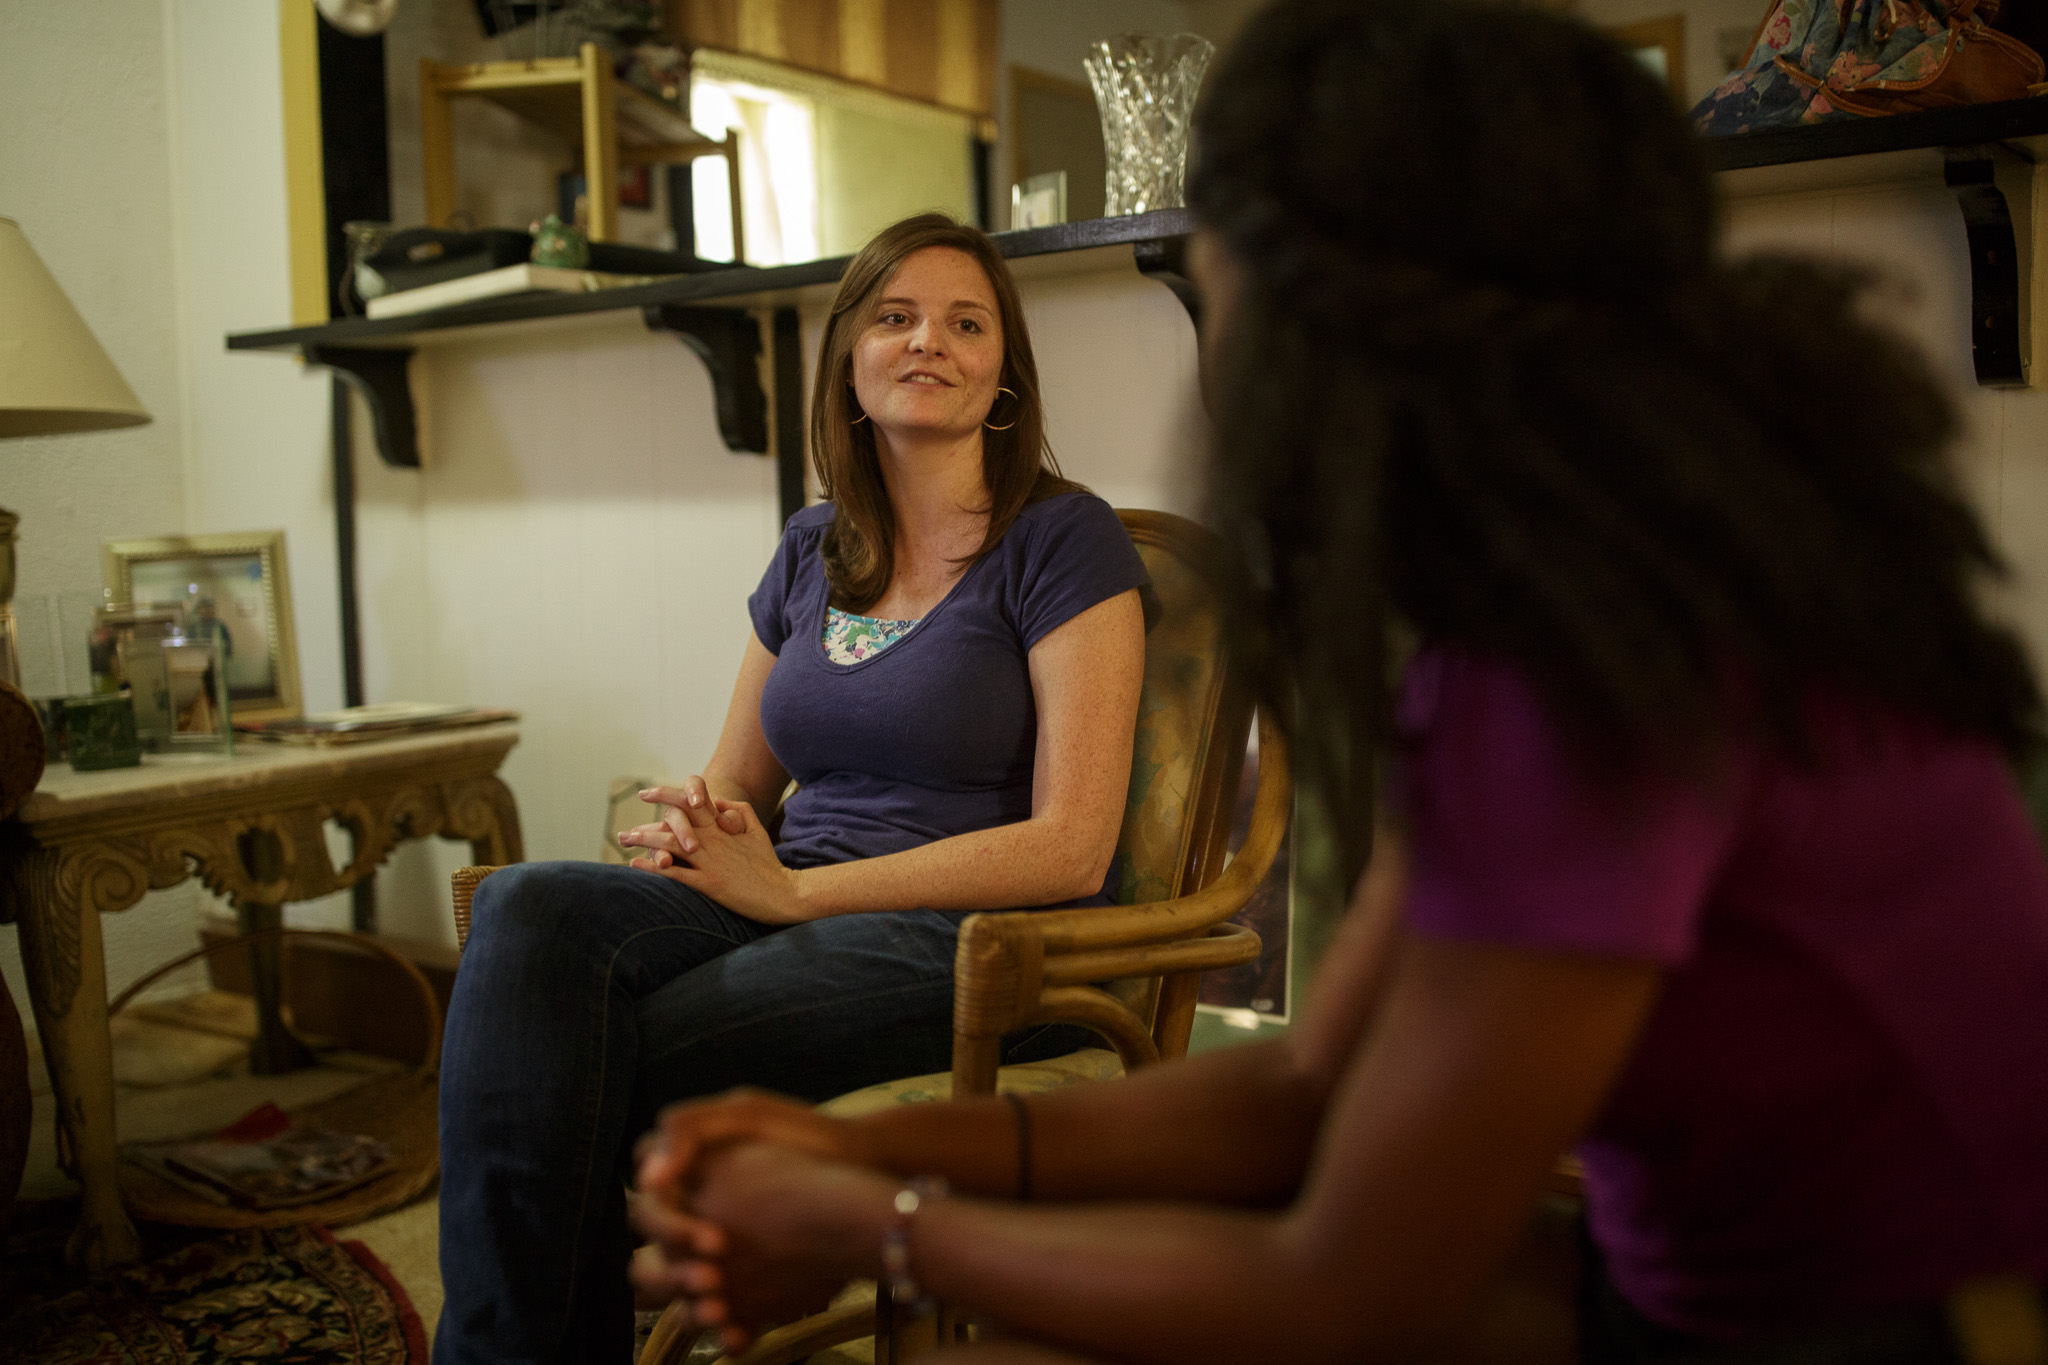 Michelle Roberts speaks with Brooke about making plans for one on one activities soon. Photo by Scott Ball.